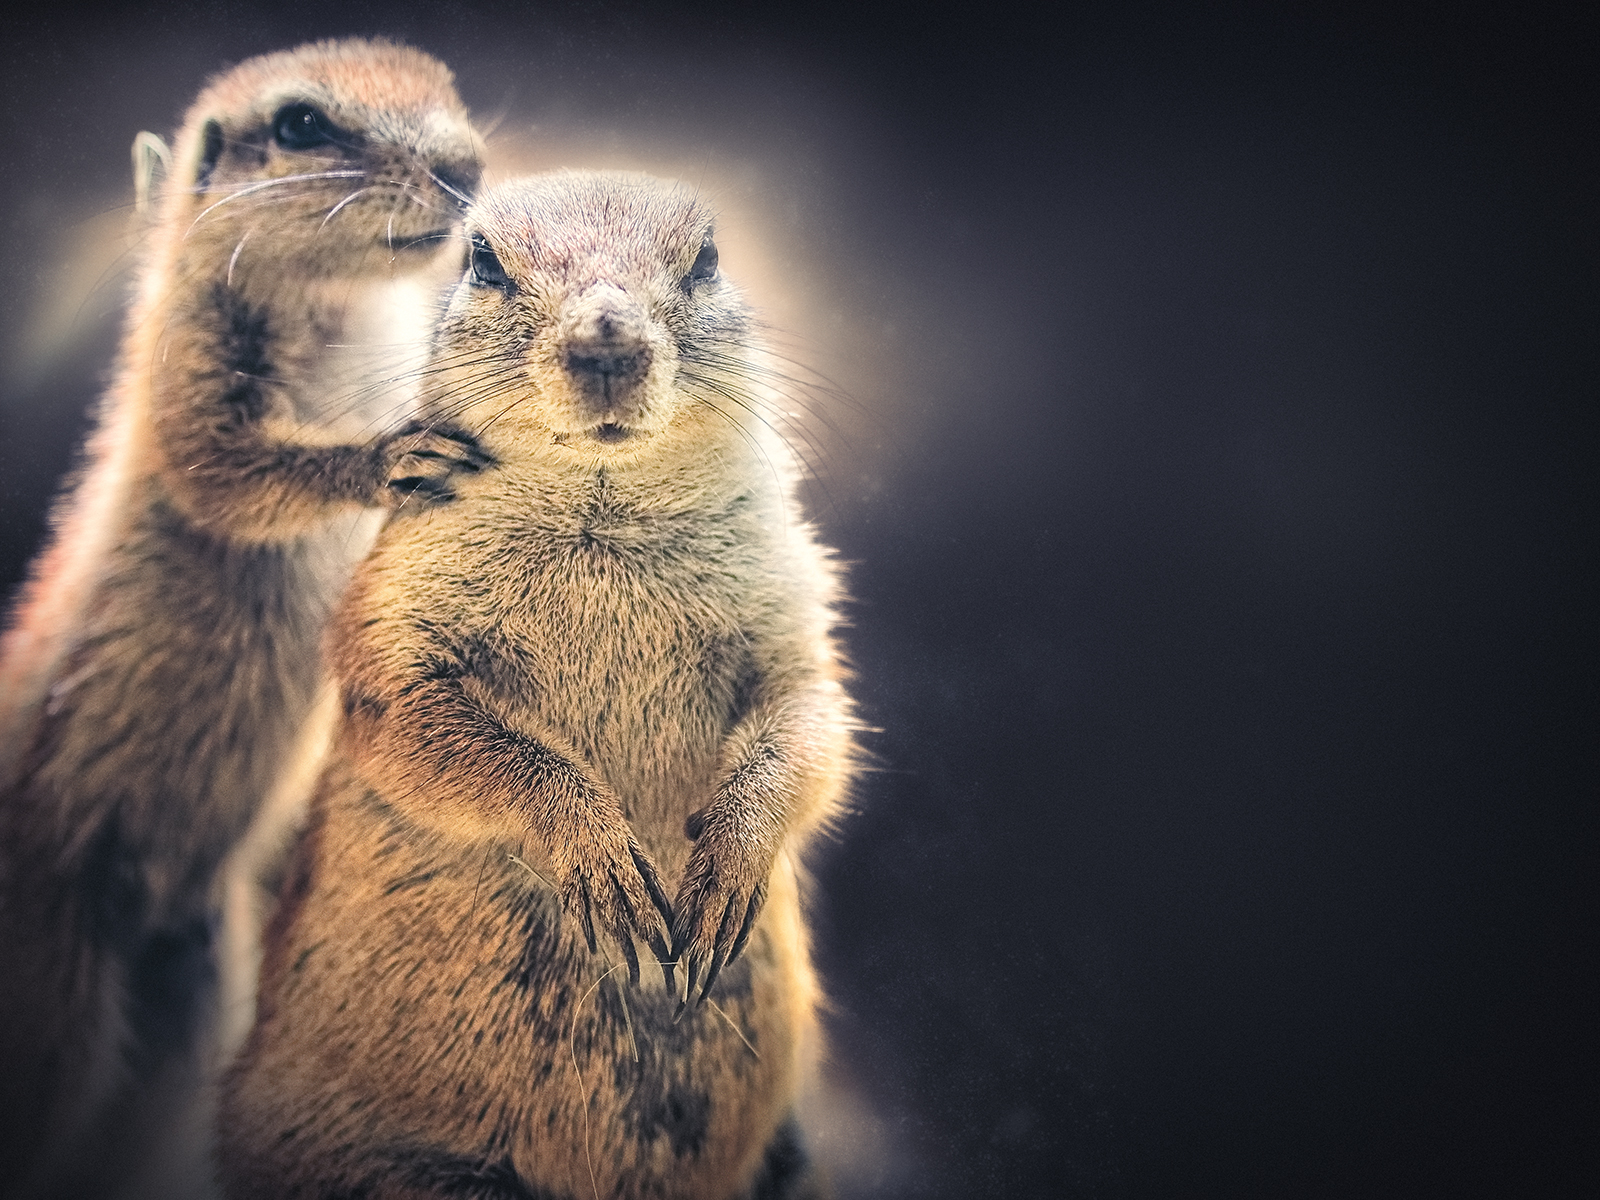 A Pair of Common Ground Squirrels